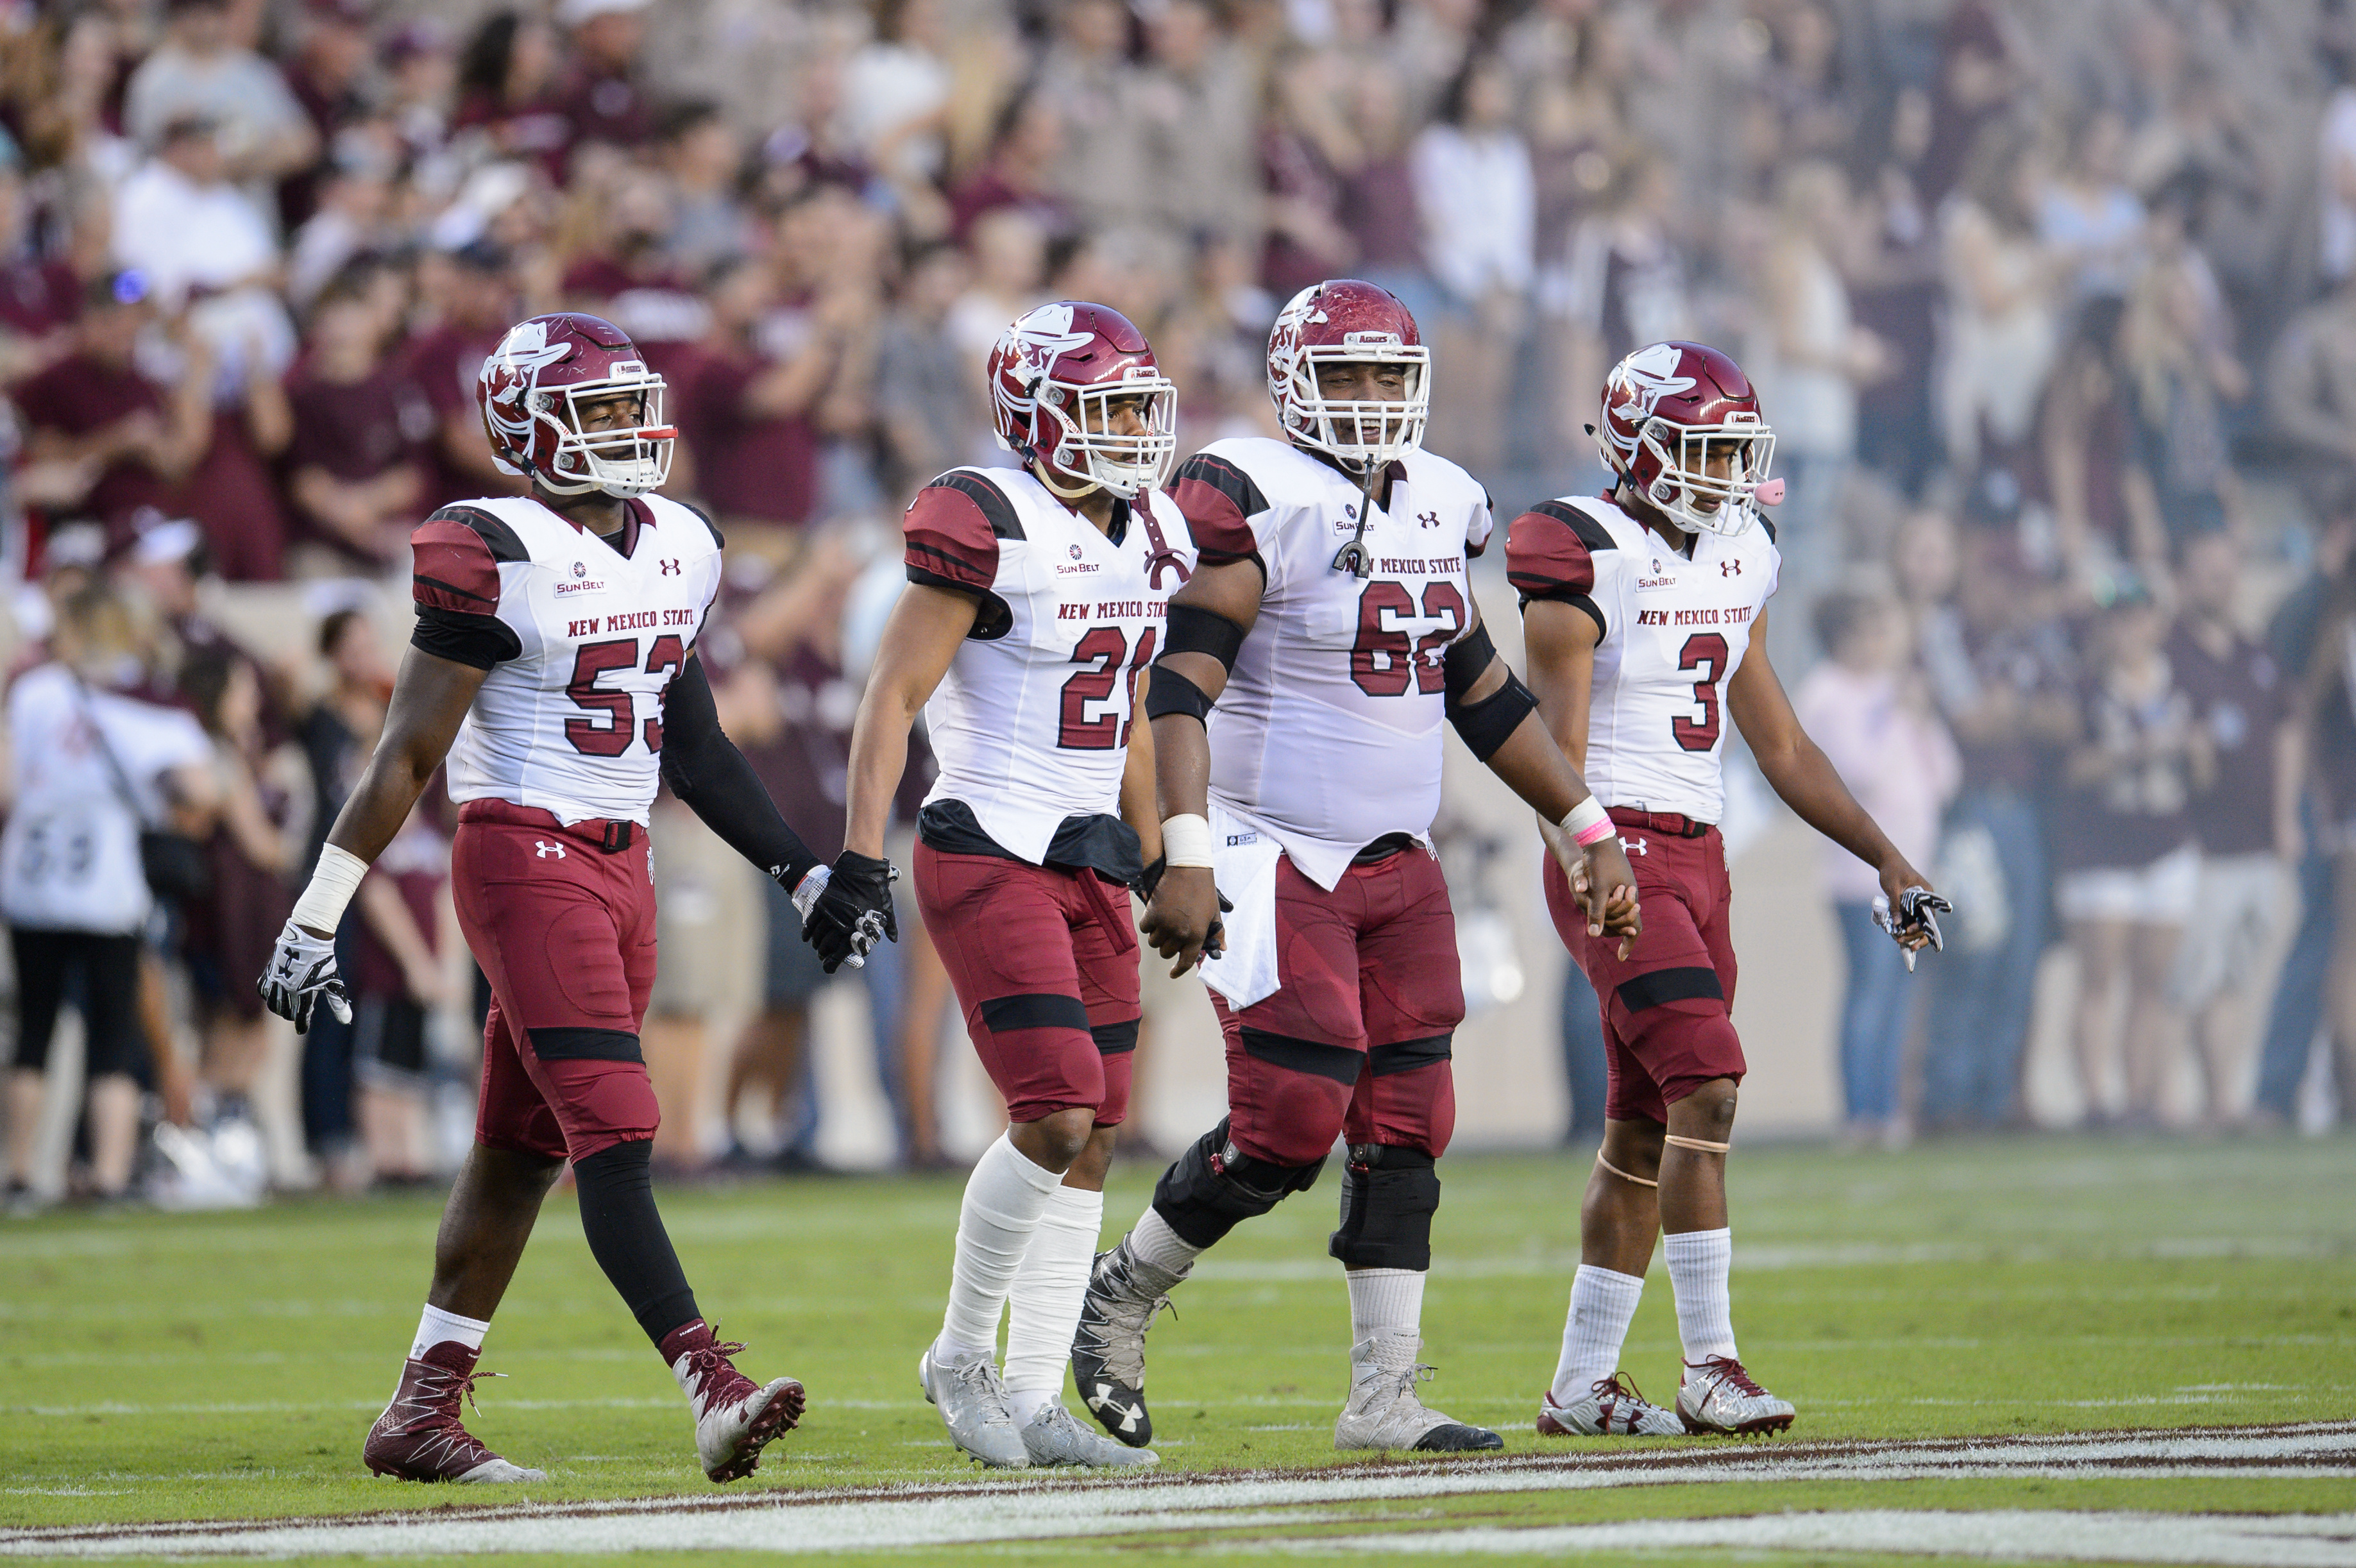 NCAA FOOTBALL: OCT 29 New Mexico State at Texas A&M